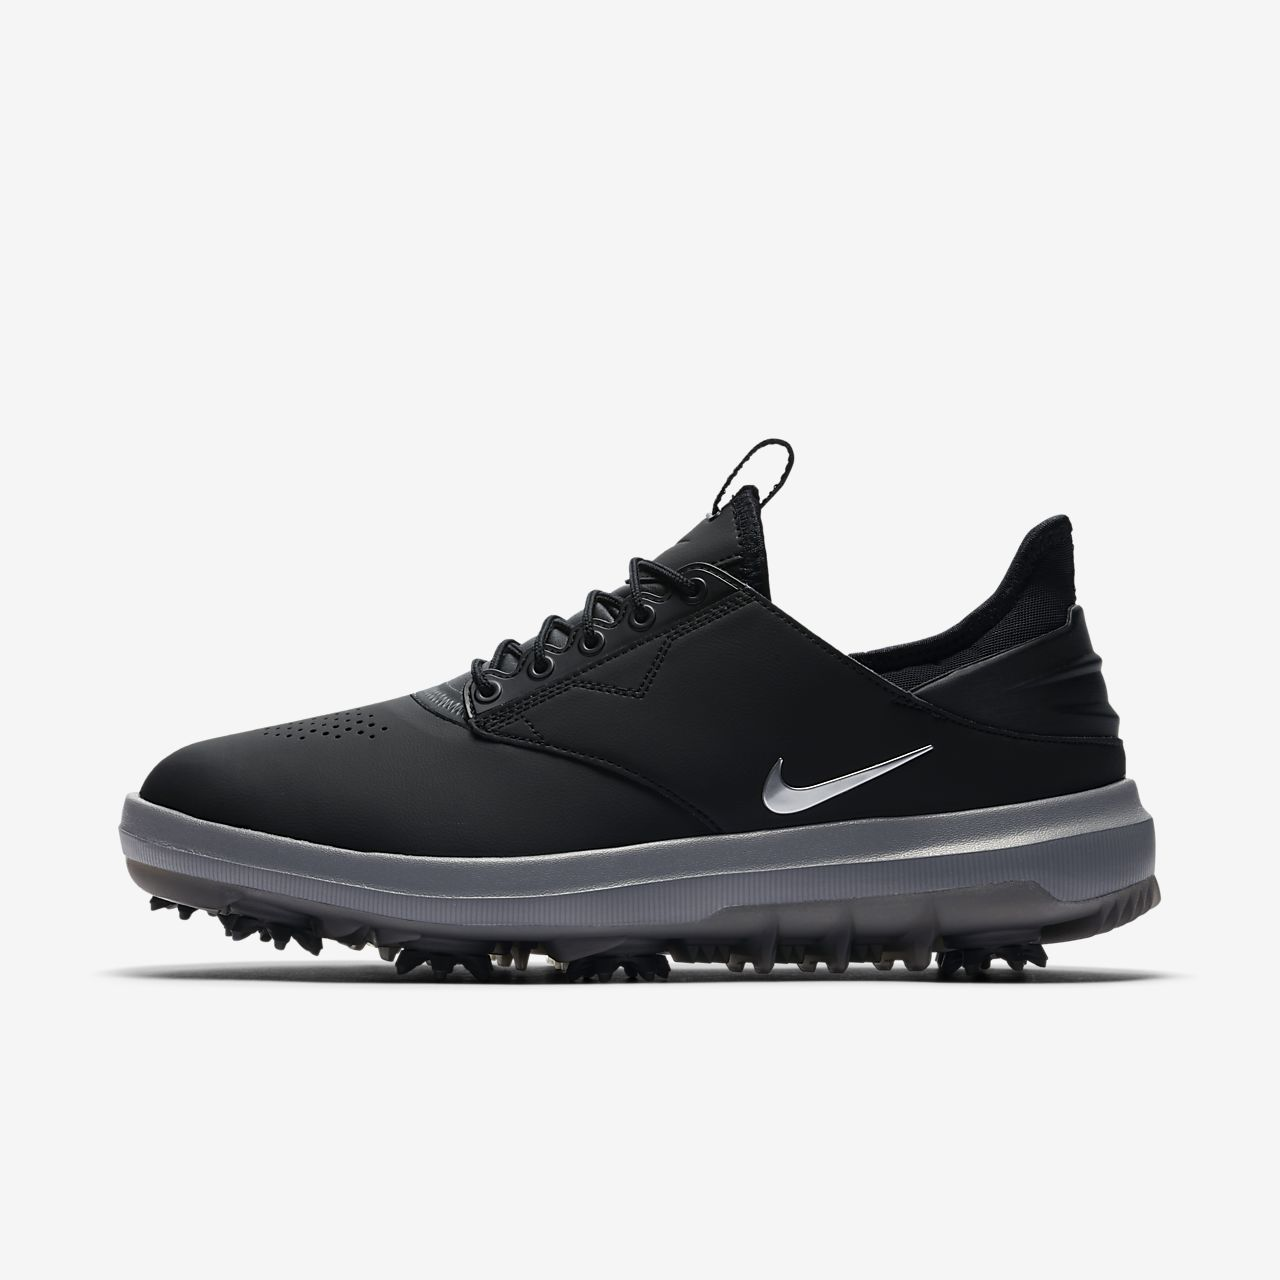 Chaussure de golf Nike Air Zoom Direct pour Homme